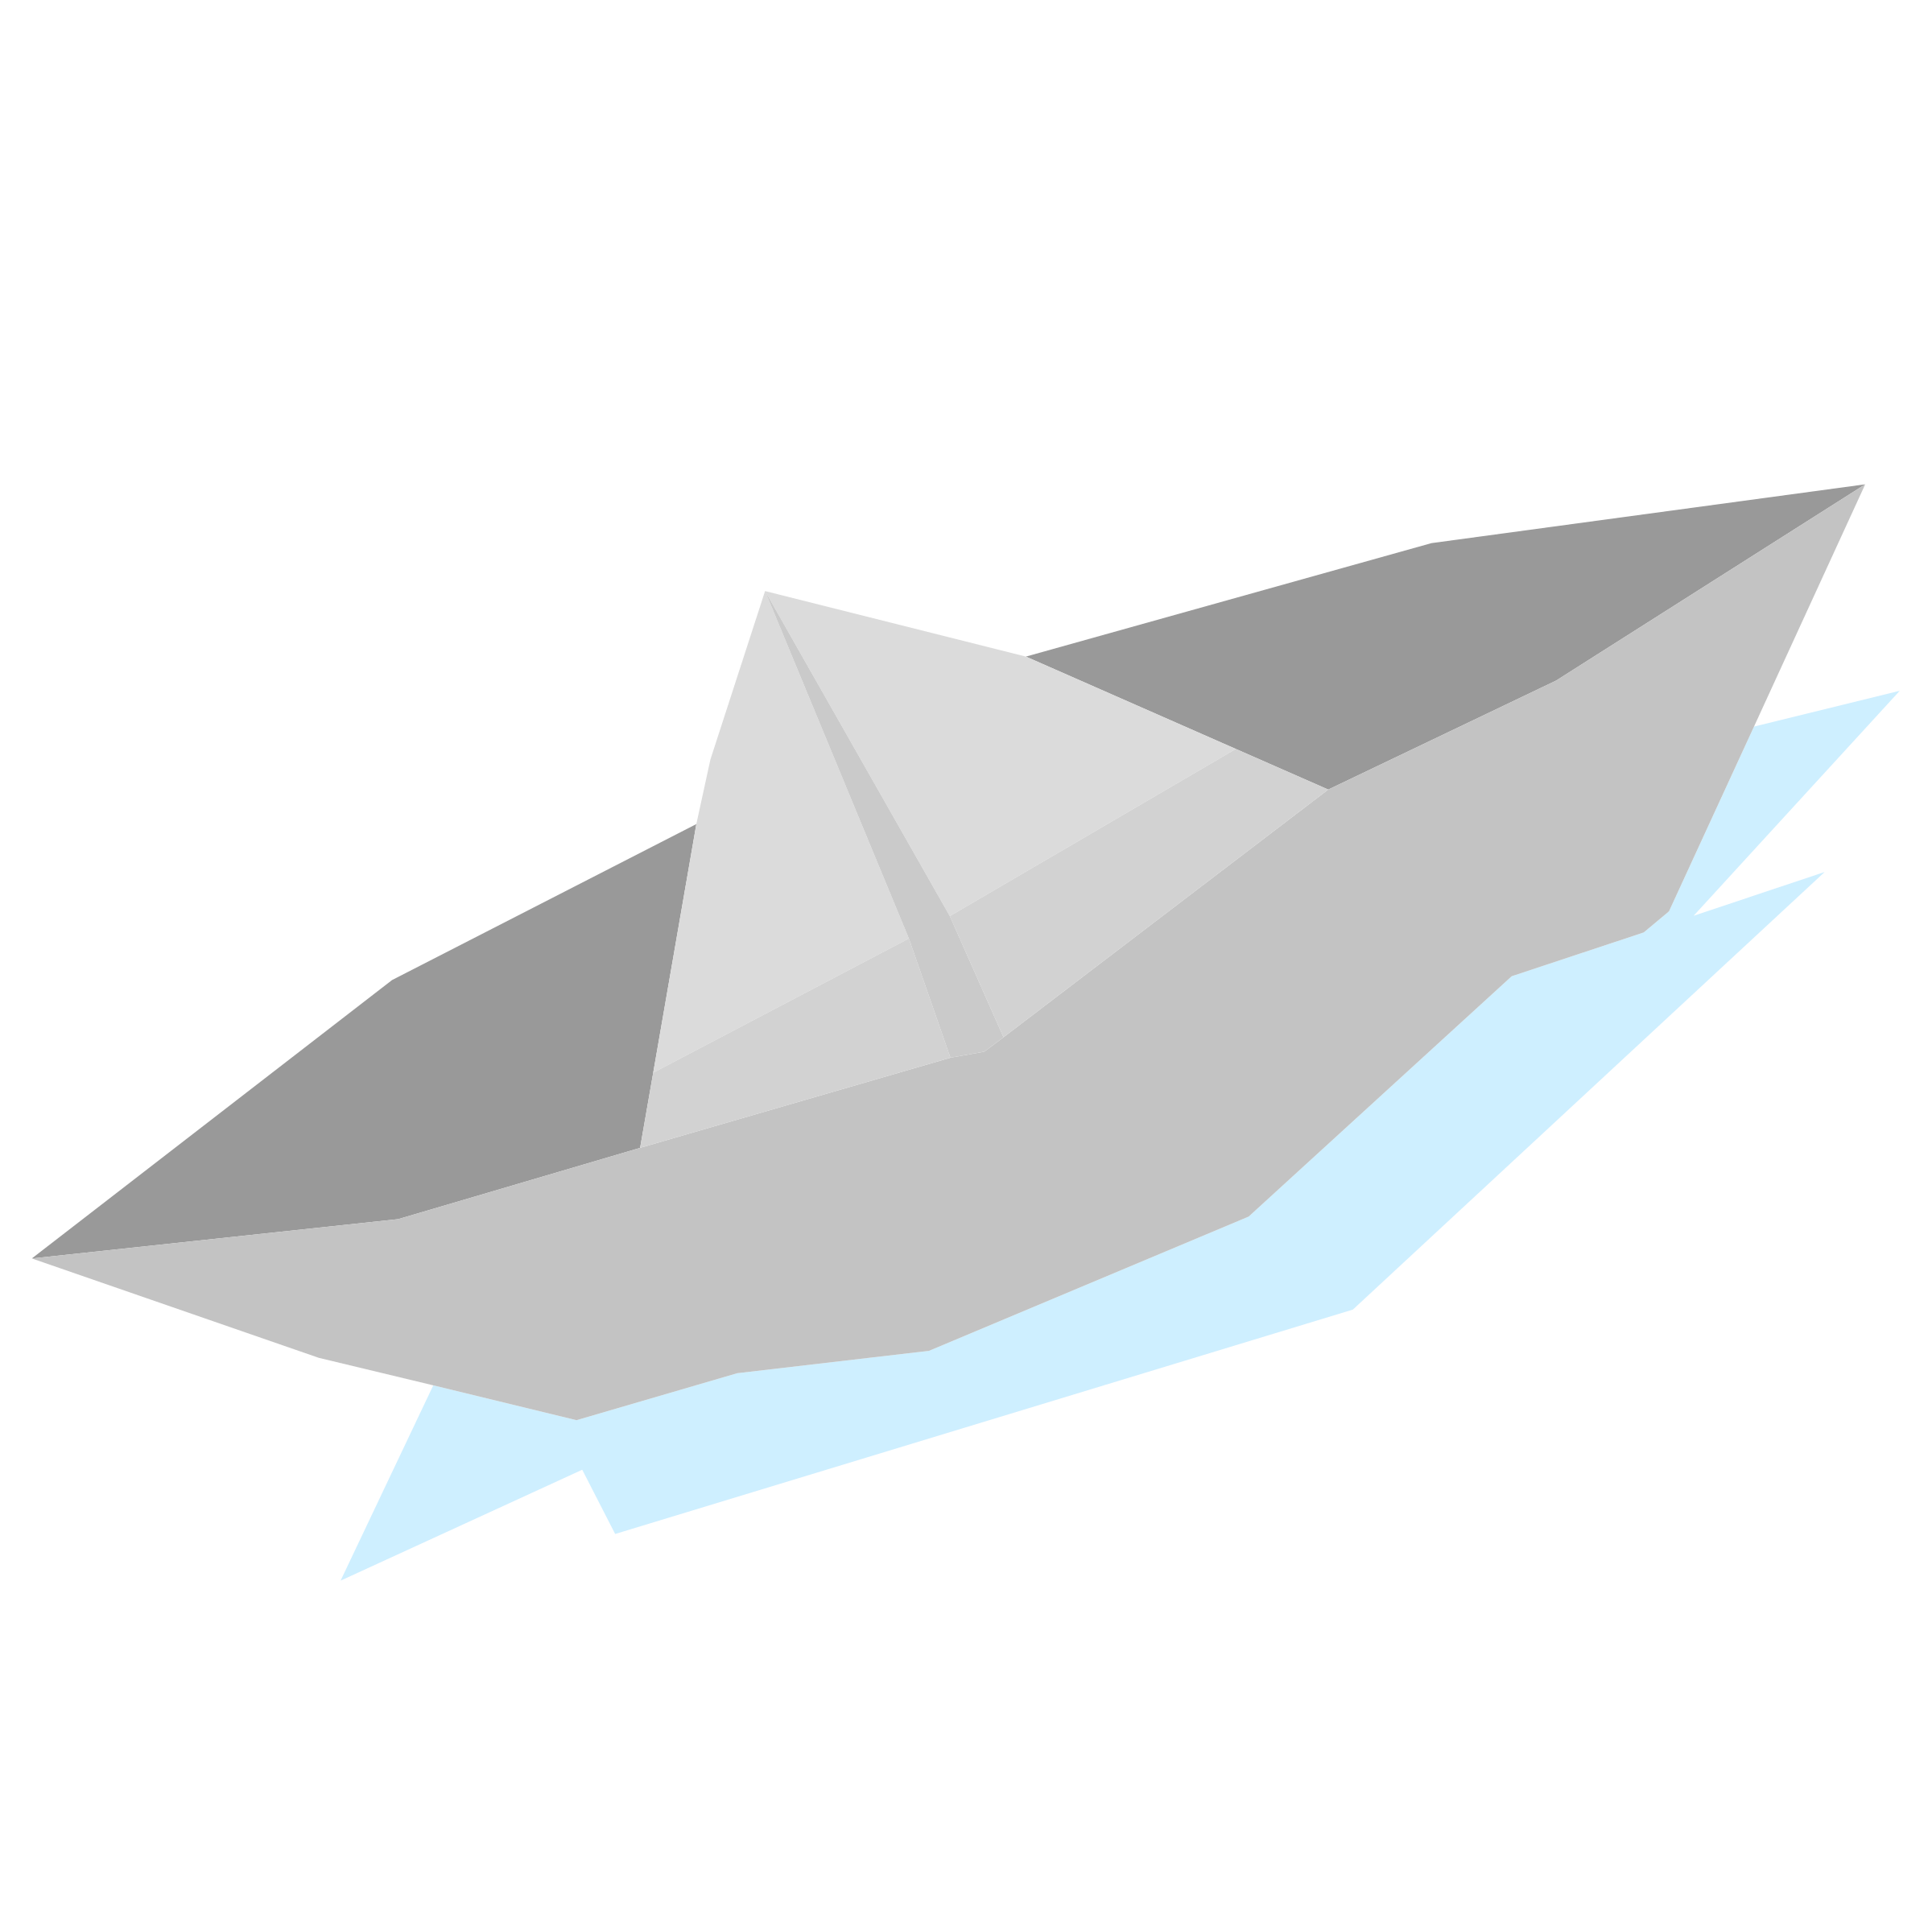 paper boat vector clipart image free stock photo coupon clip art free coupon clip art free